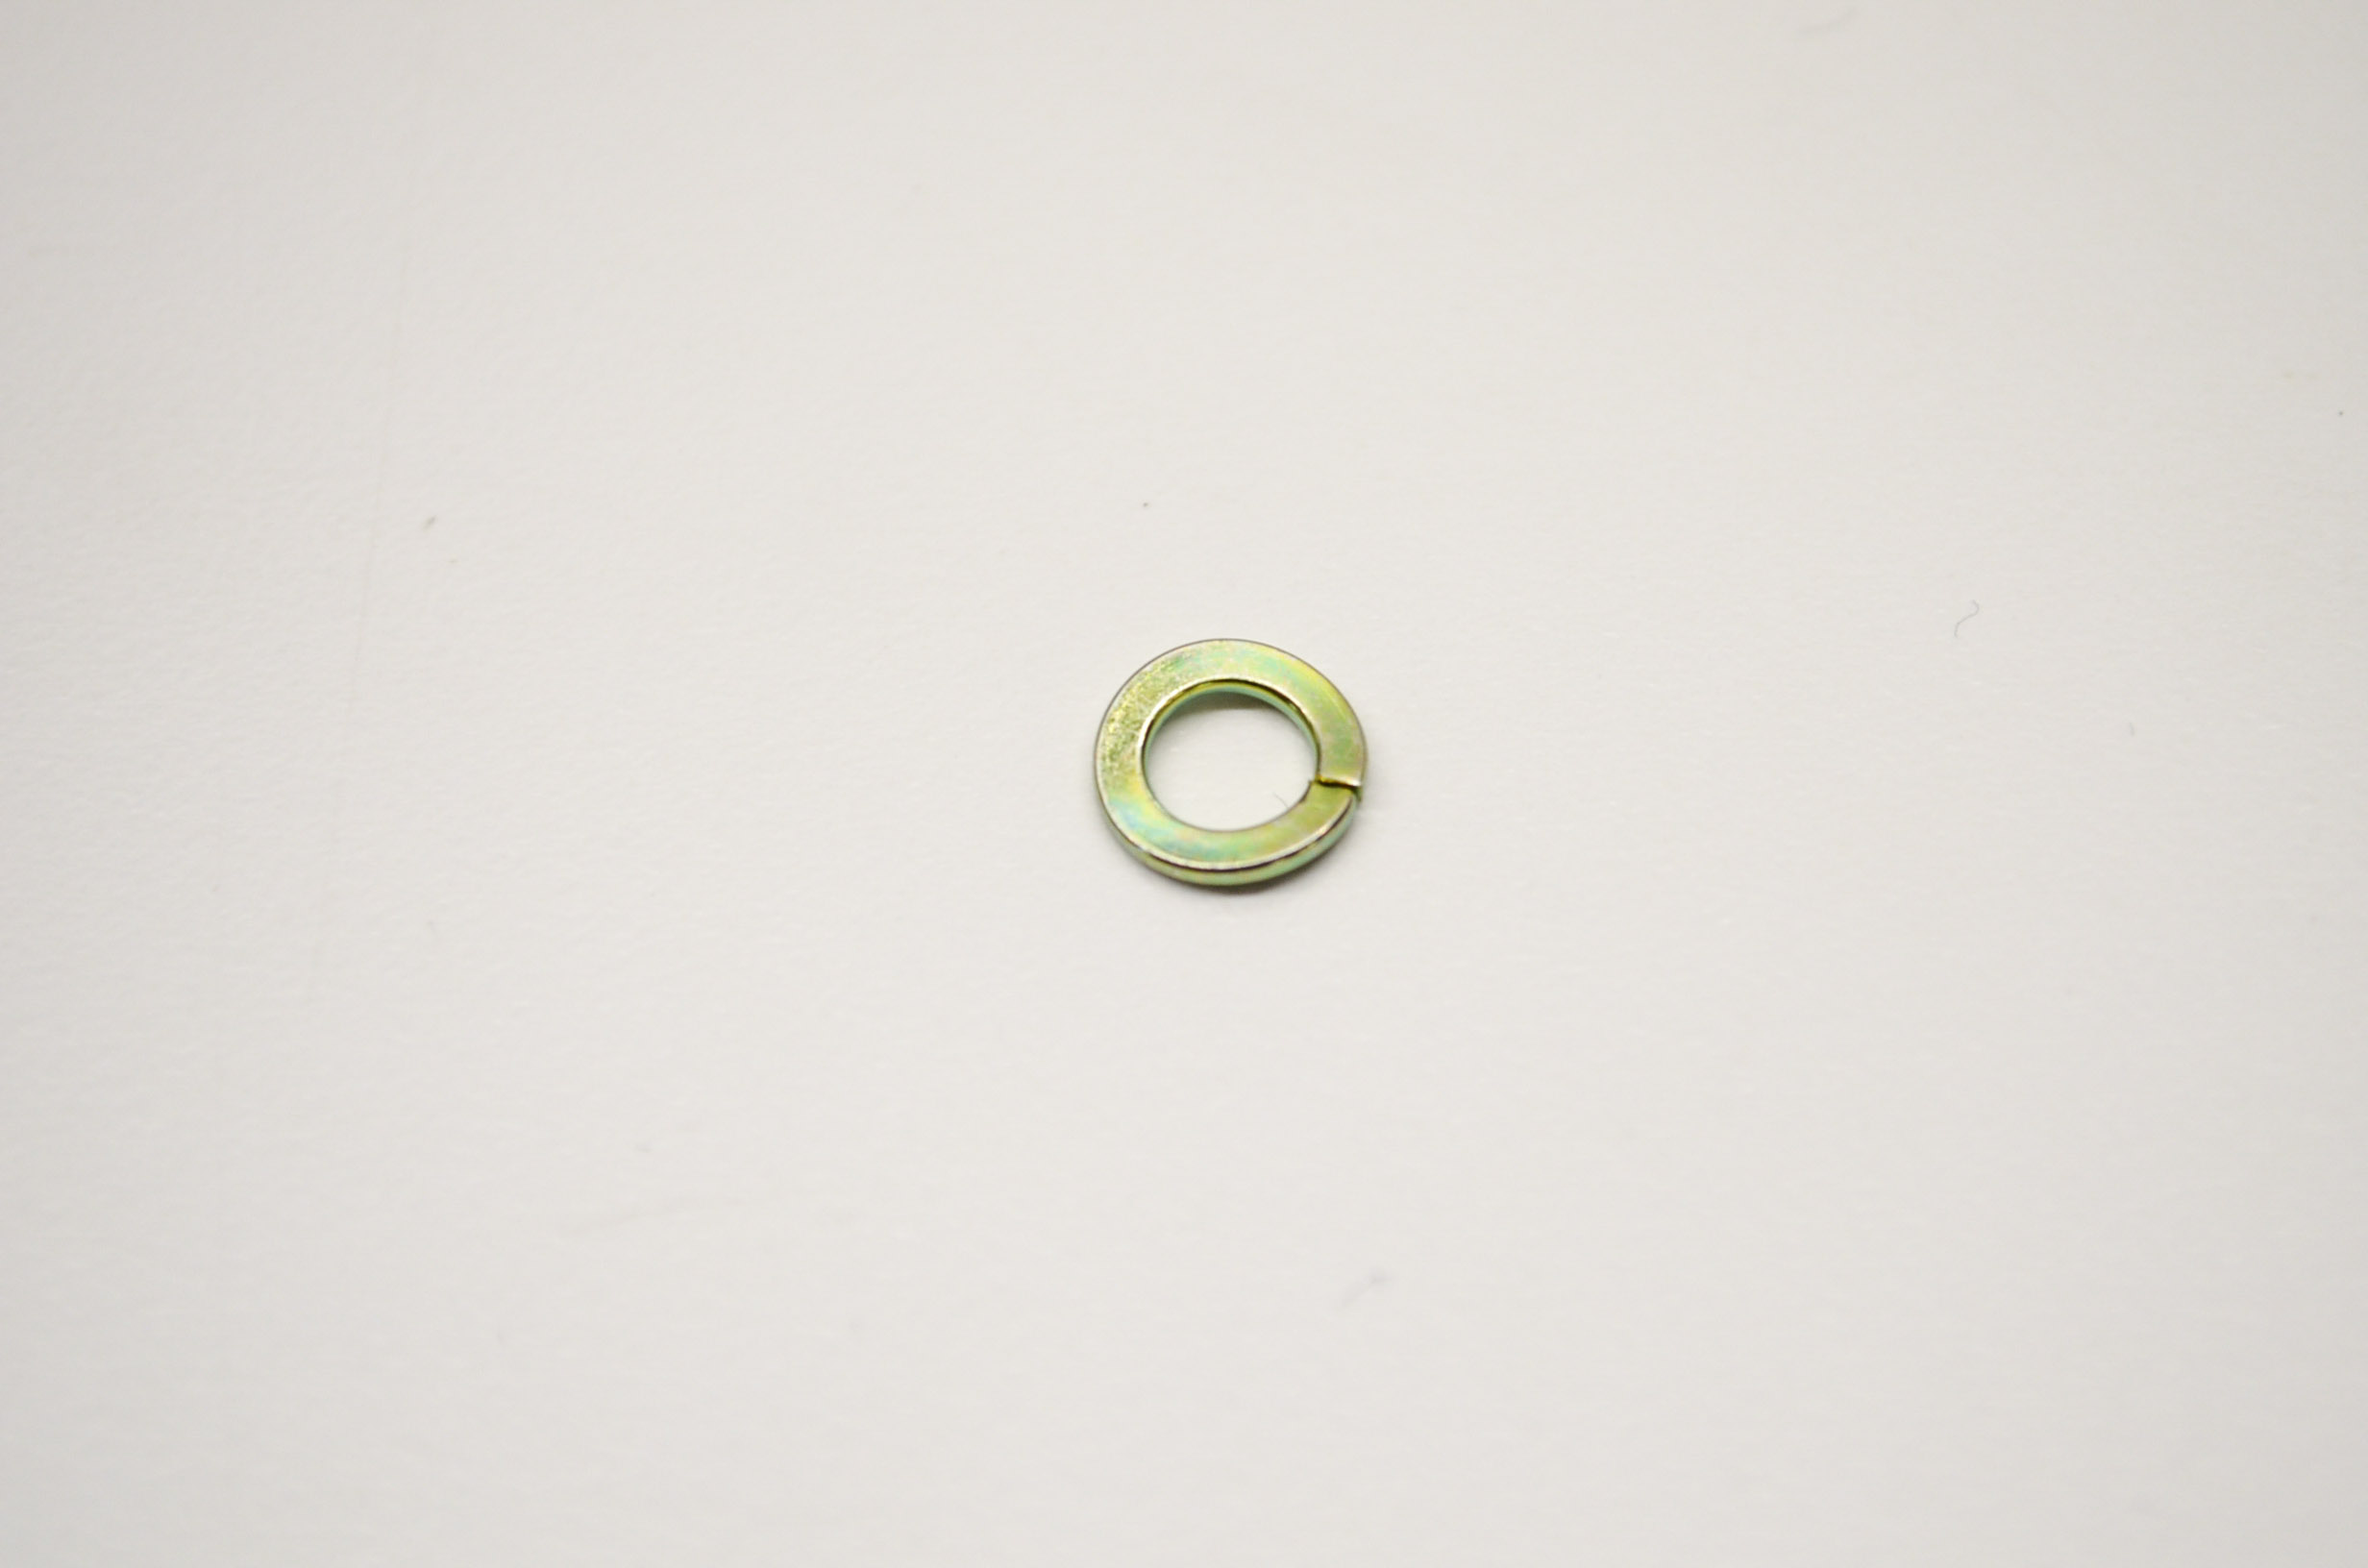 BRP, Can-Am, Sea-doo, Ski-Doo 414806700 Ski-Doo Lock Washer Formula Touring Skandic Summit MX Z QTY 1 by BRP, Can-Am, Sea-doo, Ski-Doo